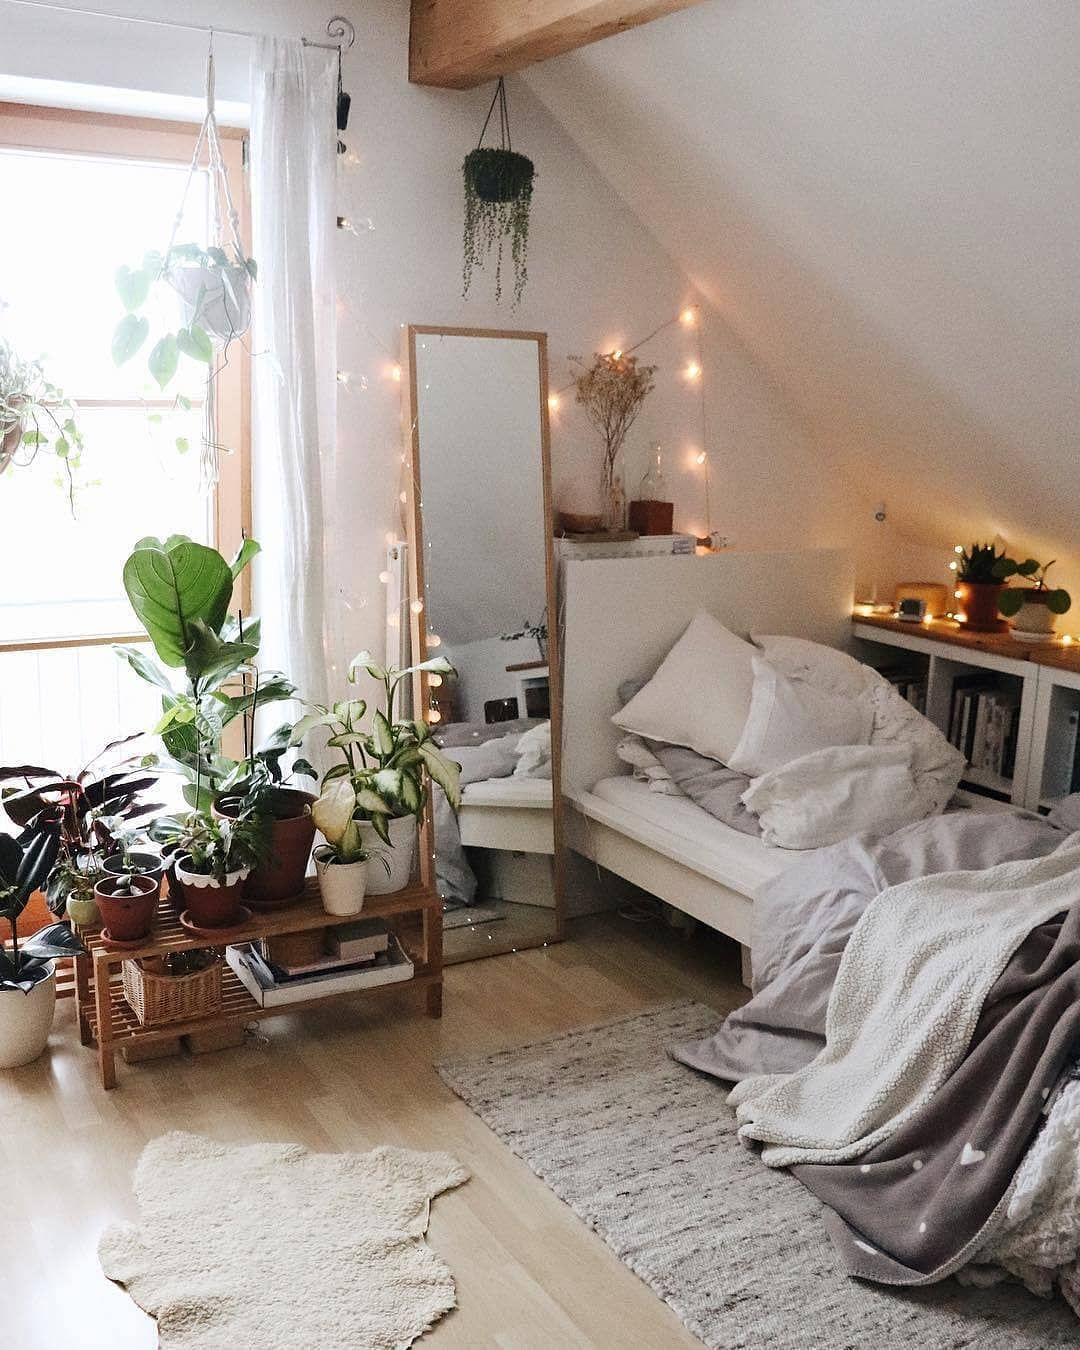 Different Choices For Your Home Decor In 2020 Bedroom Decor Stylish Bedroom Bedroom Design